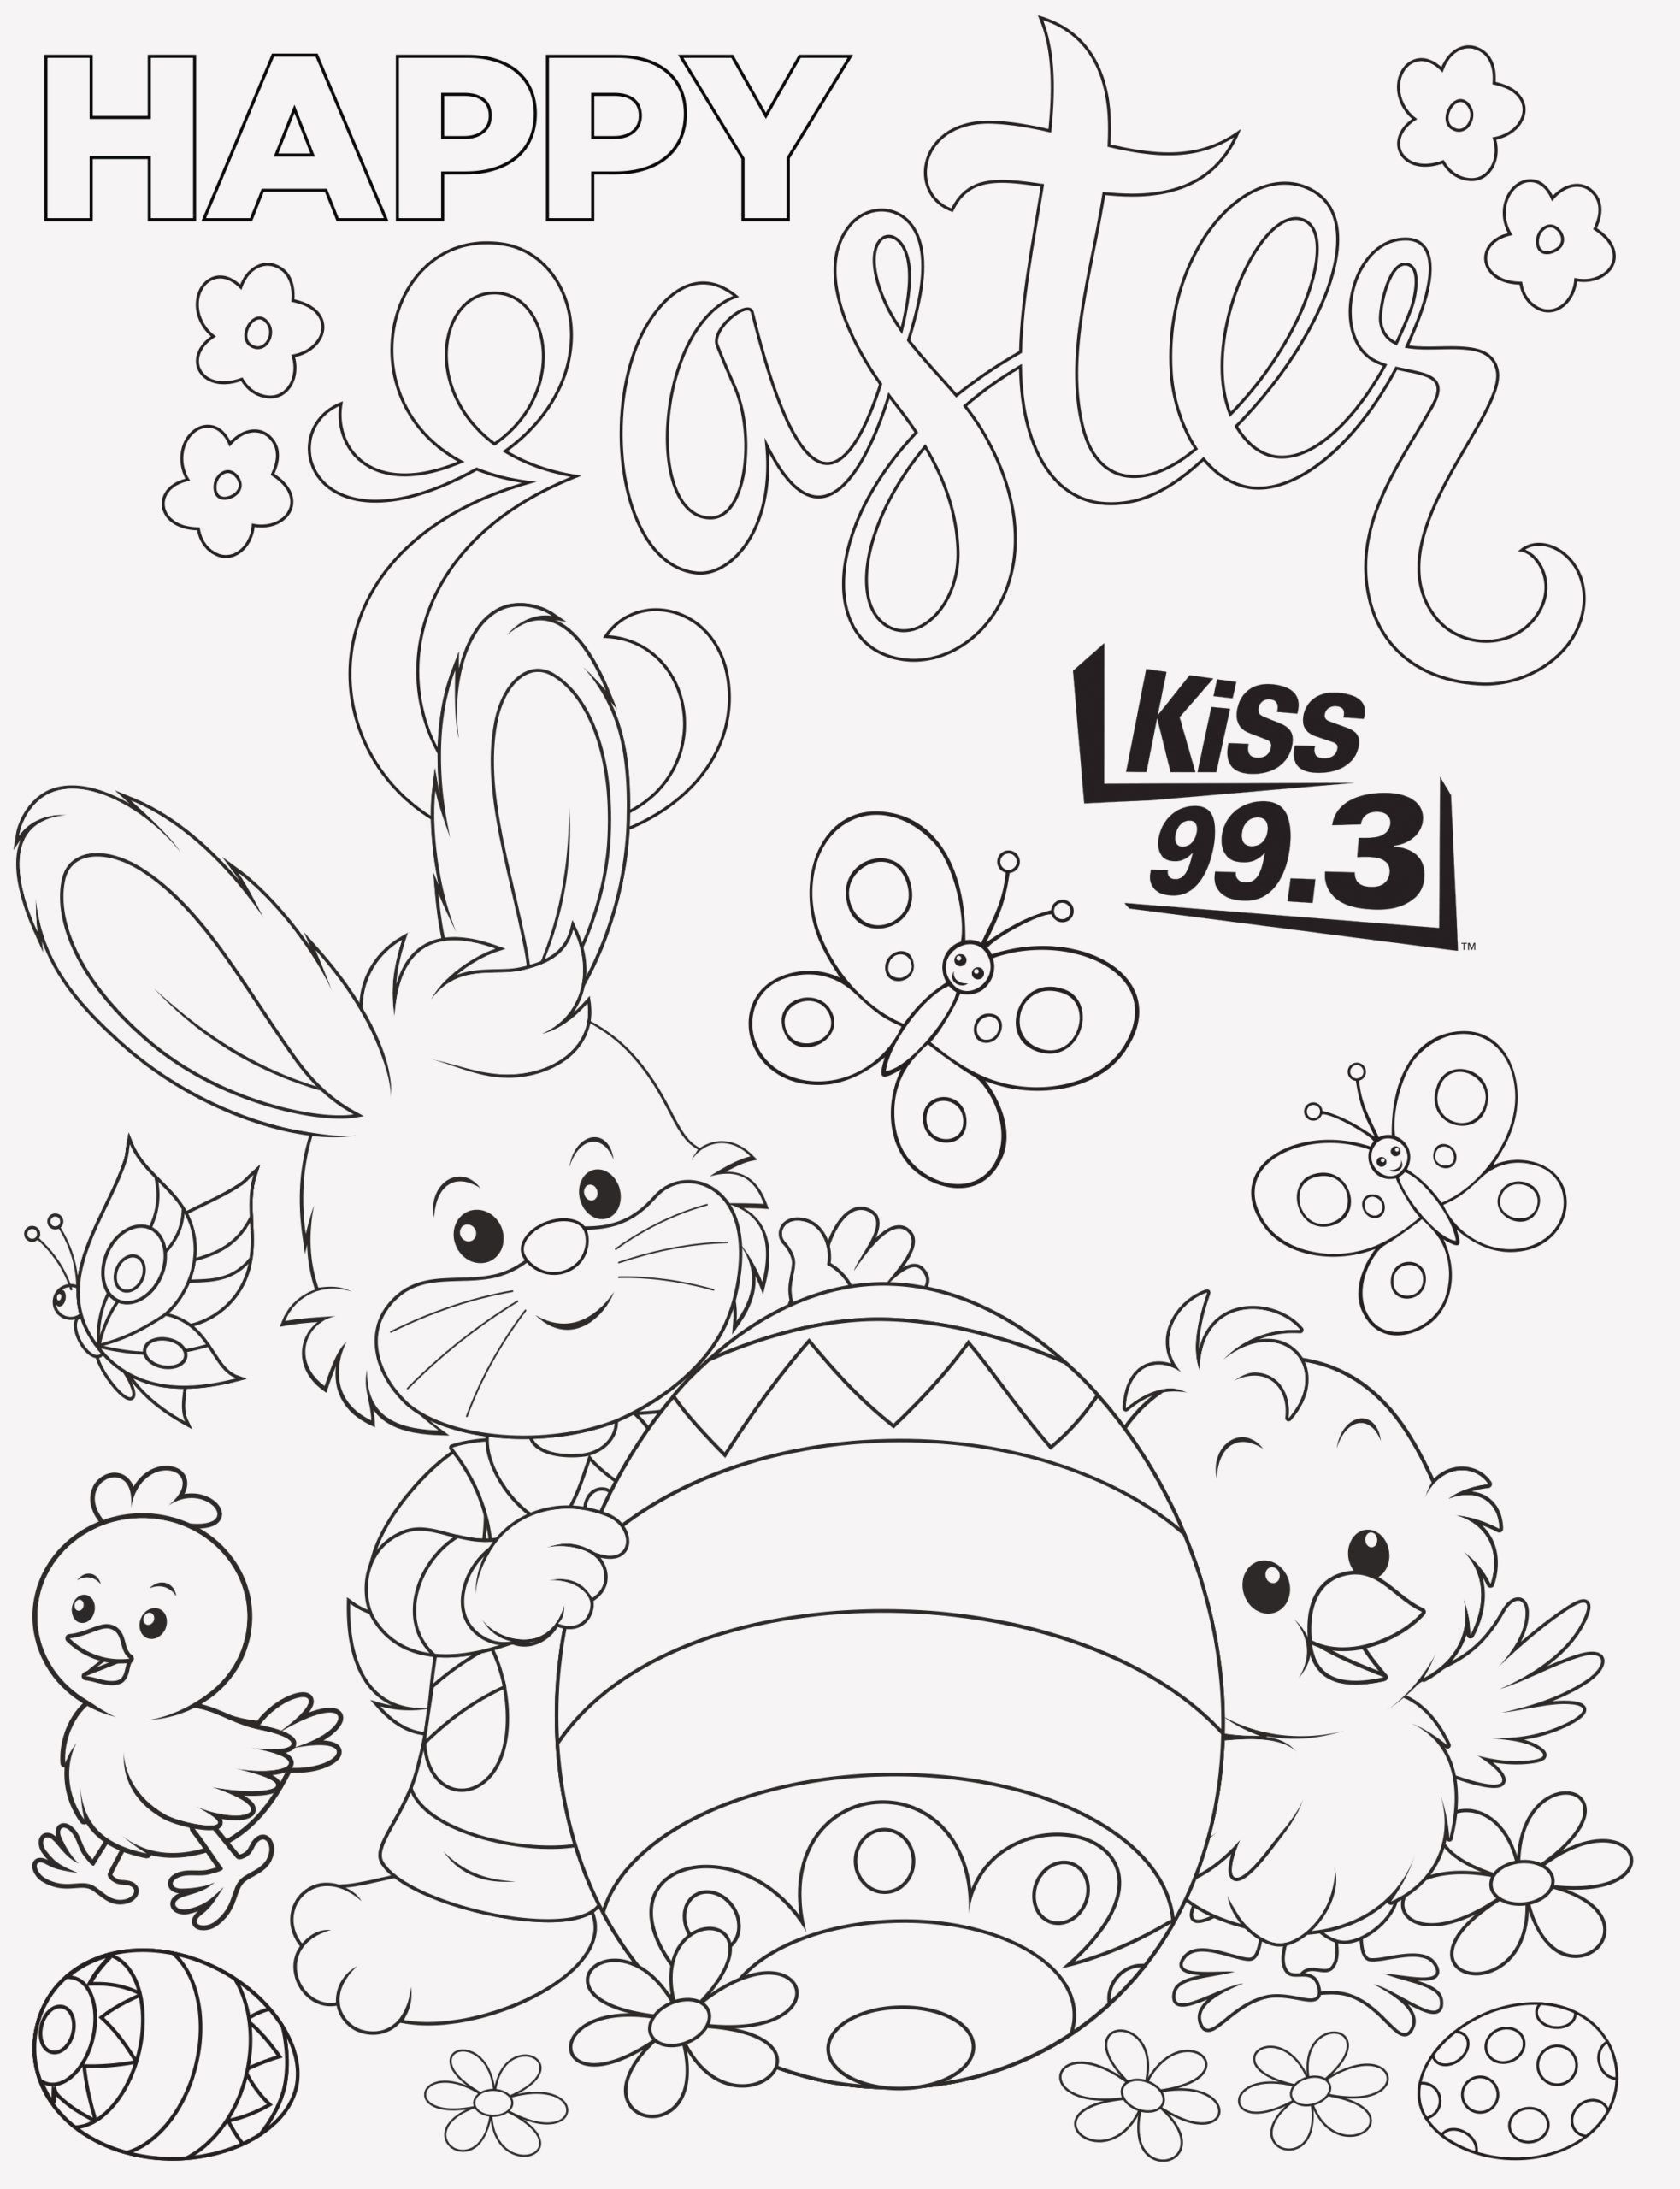 13 Printable Coloring Pages For Kindergarten In